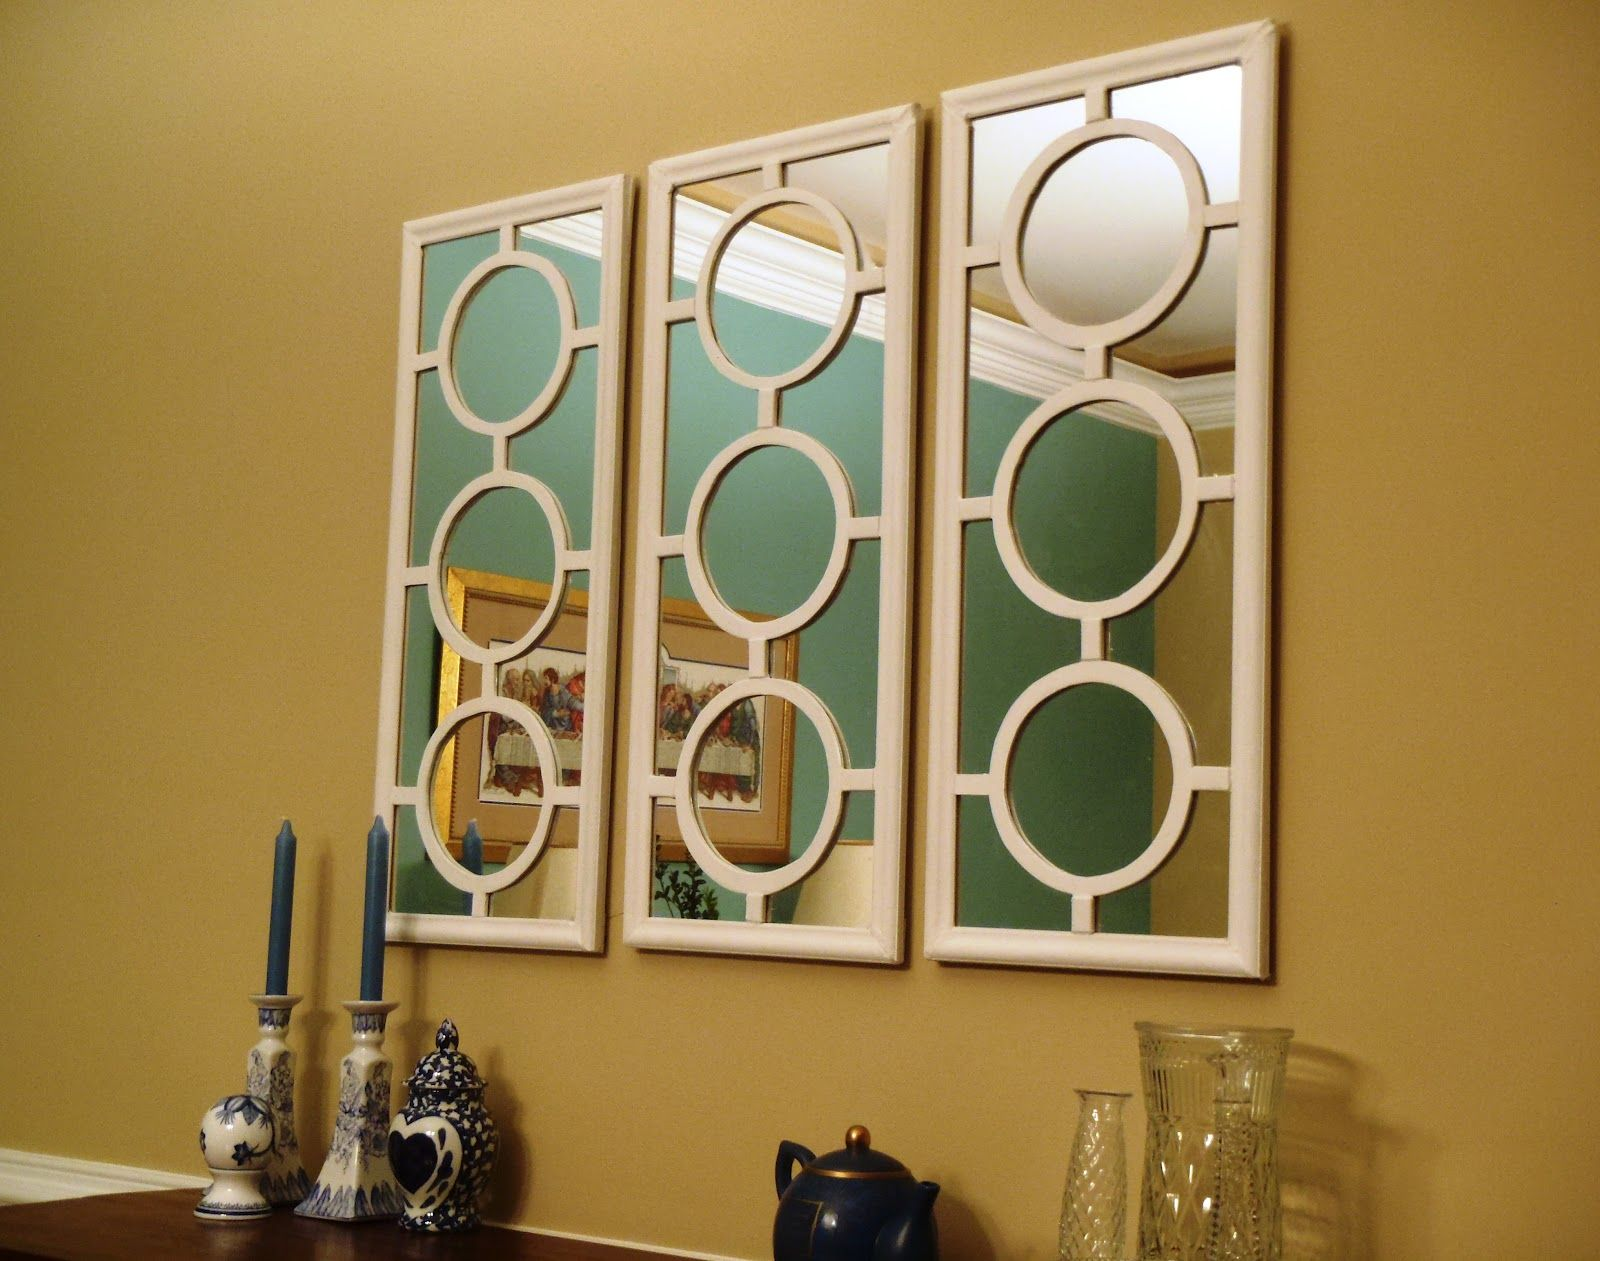 Dining Room Wall Decor With Mirrors  Wall Art  Pinterest Mesmerizing Decorative Mirrors Dining Room Inspiration Design